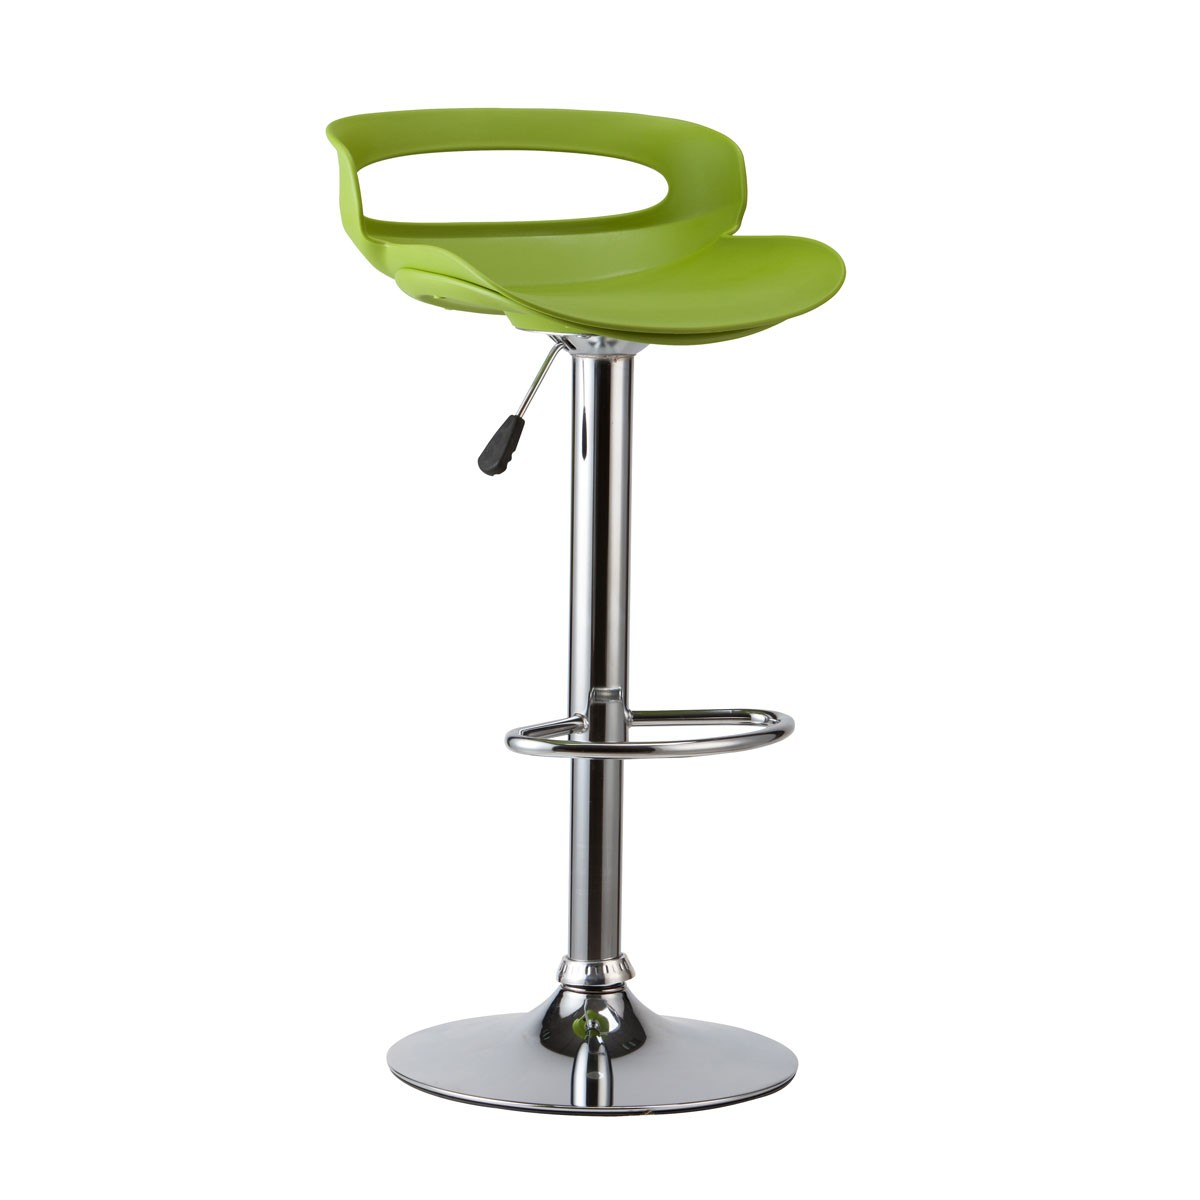 Ensemble de 4 tabourets de bar plastique ymg 8815 1 decoraport canada - Tabouret bar plastique ...